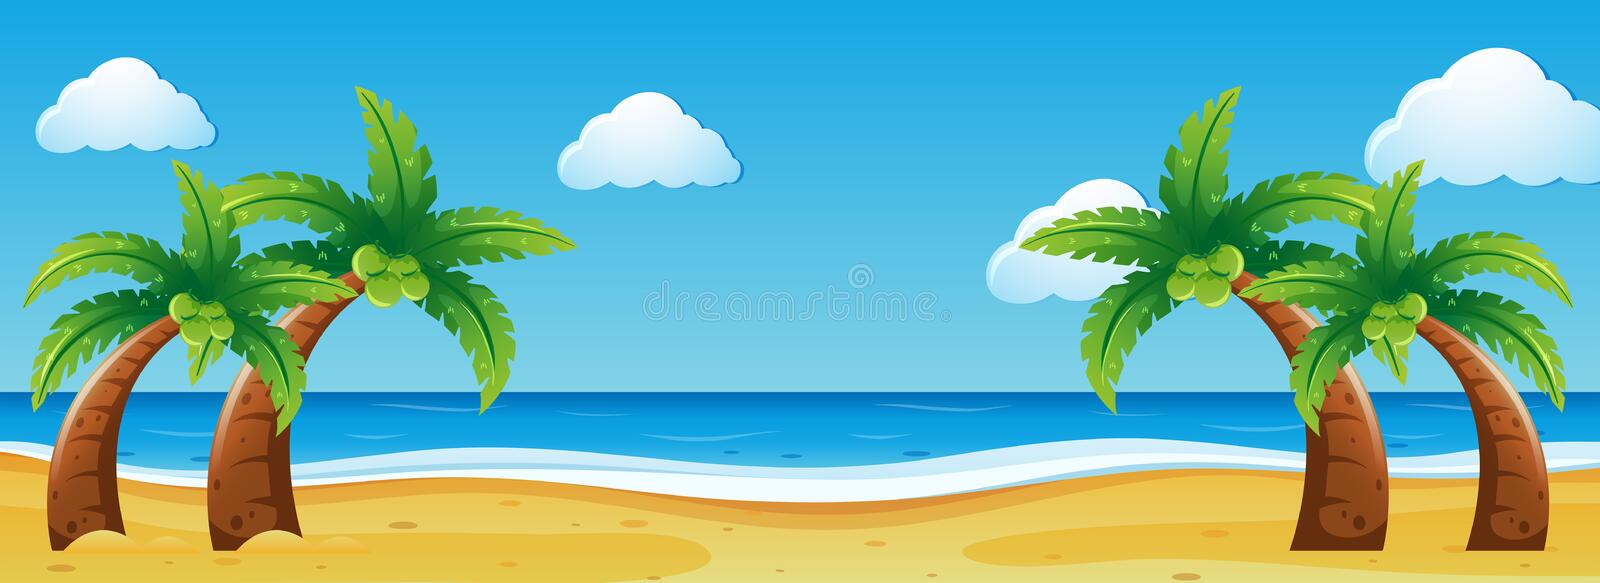 Scene with coconut trees on the beach vector illustration